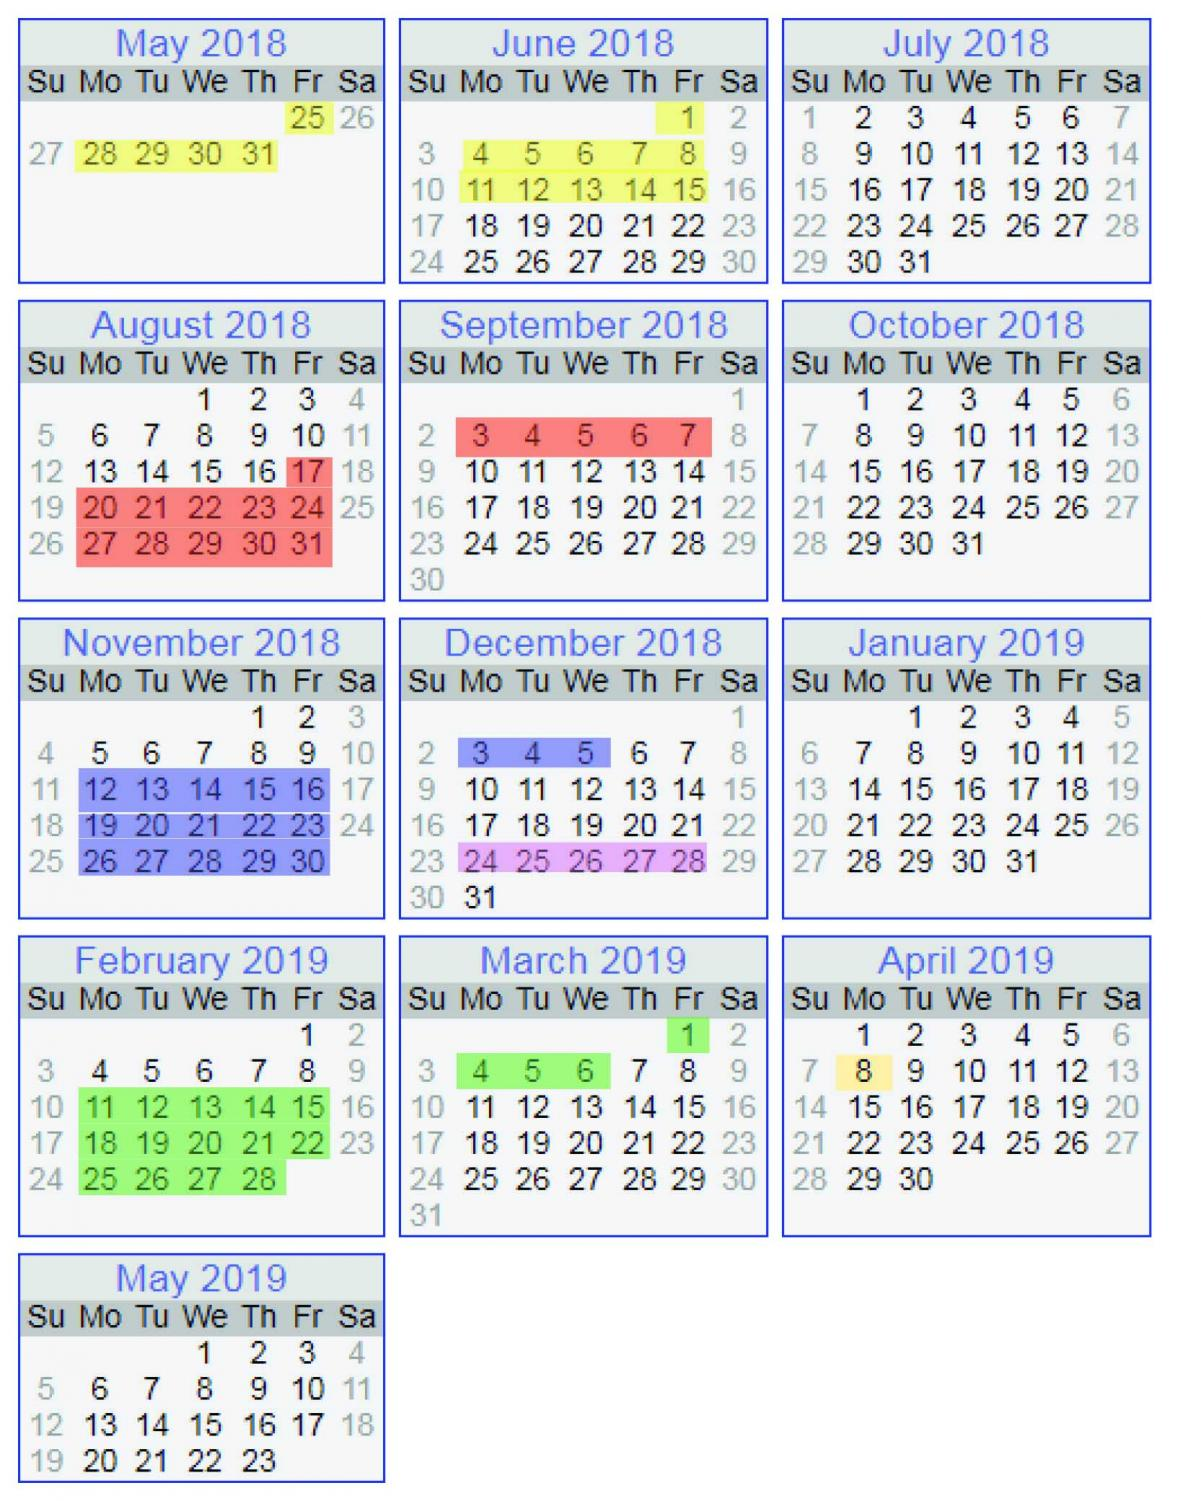 This is an example of a schedule that would potentially replace the summer vacation schedule. Instead of having a sinlge long break, this schedule spreads out all the breaks into four main sections for each season. The shaded regions are breaks and the unshaded regions are school days. Accompanying these breaks would be an additional 11 days for scattered additional breaks not listed on the calendar.